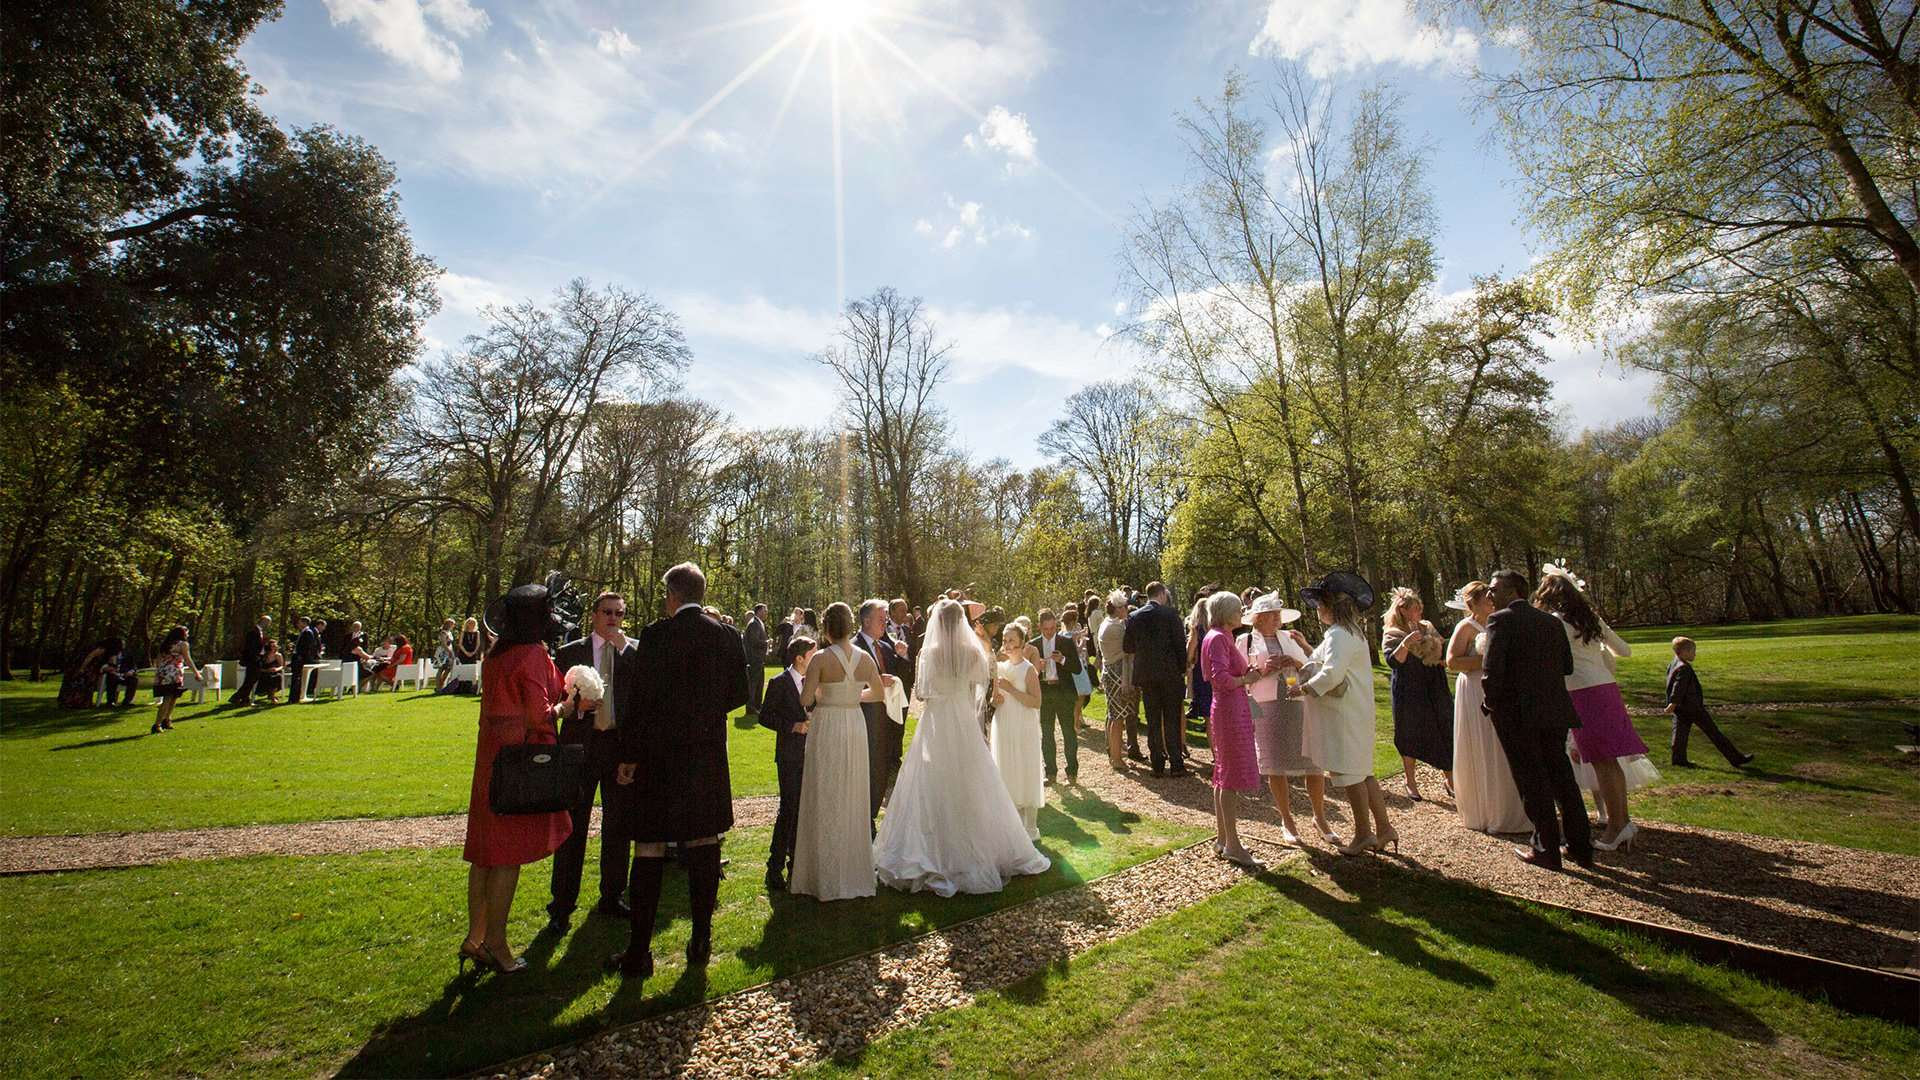 The best ways to encourage your wedding guests to mingle